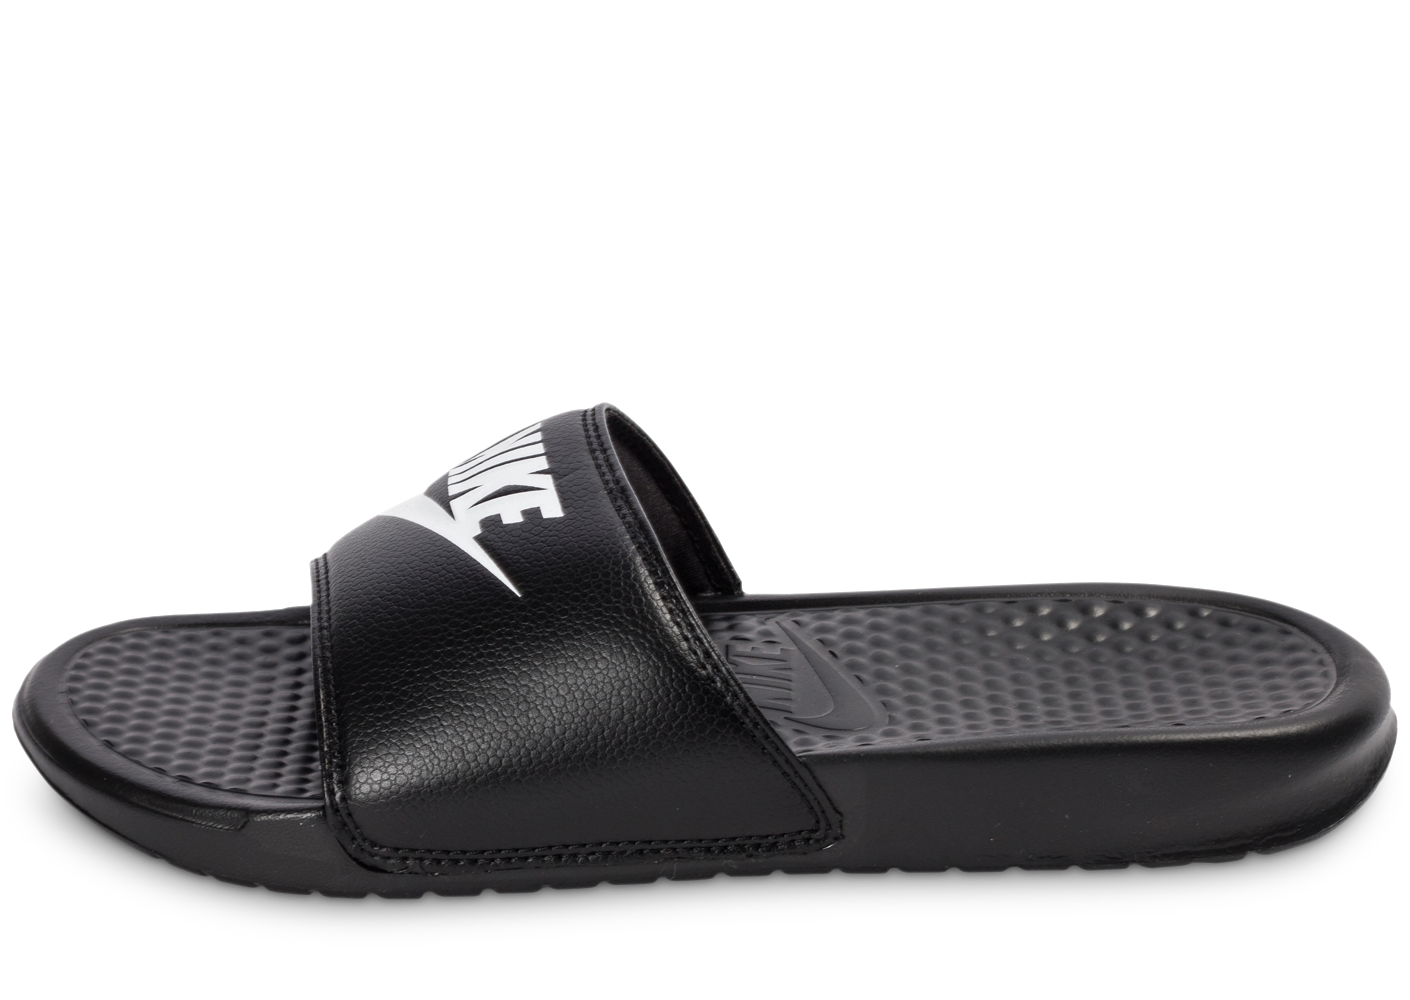 Nike Homme Benassi Just Do It Noire